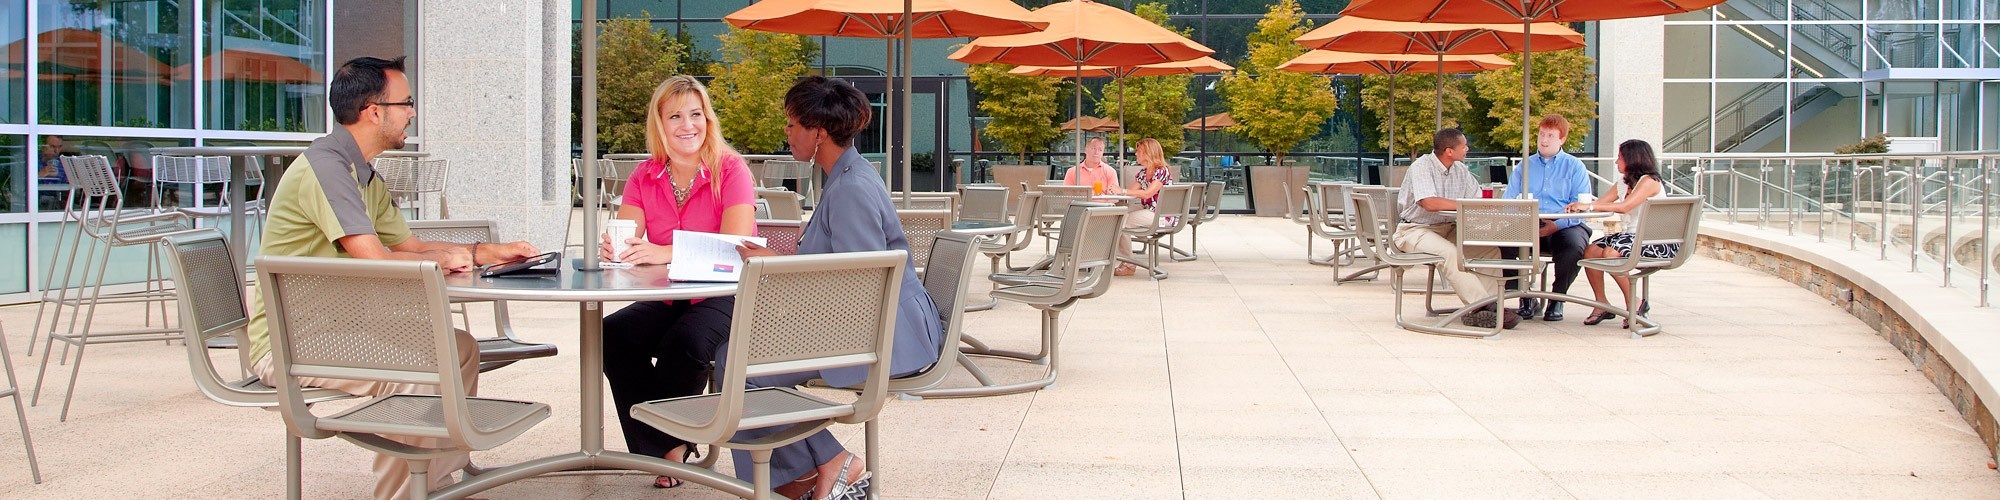 Employees sitting at tables of outdoor patio area at SAS headquarters in Cary NC